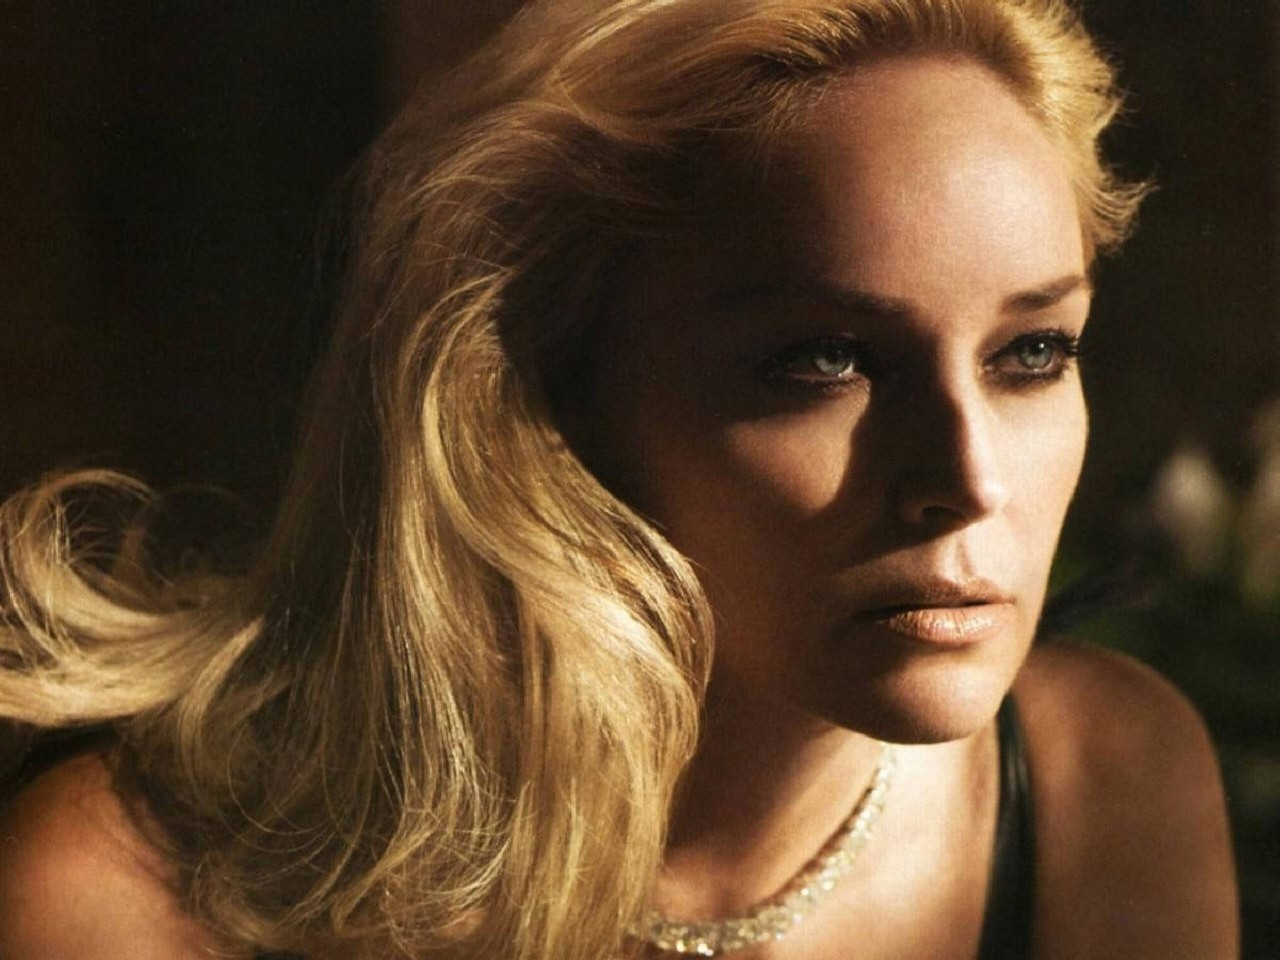 Wallpaper: una seducente immagine di Sharon Stone